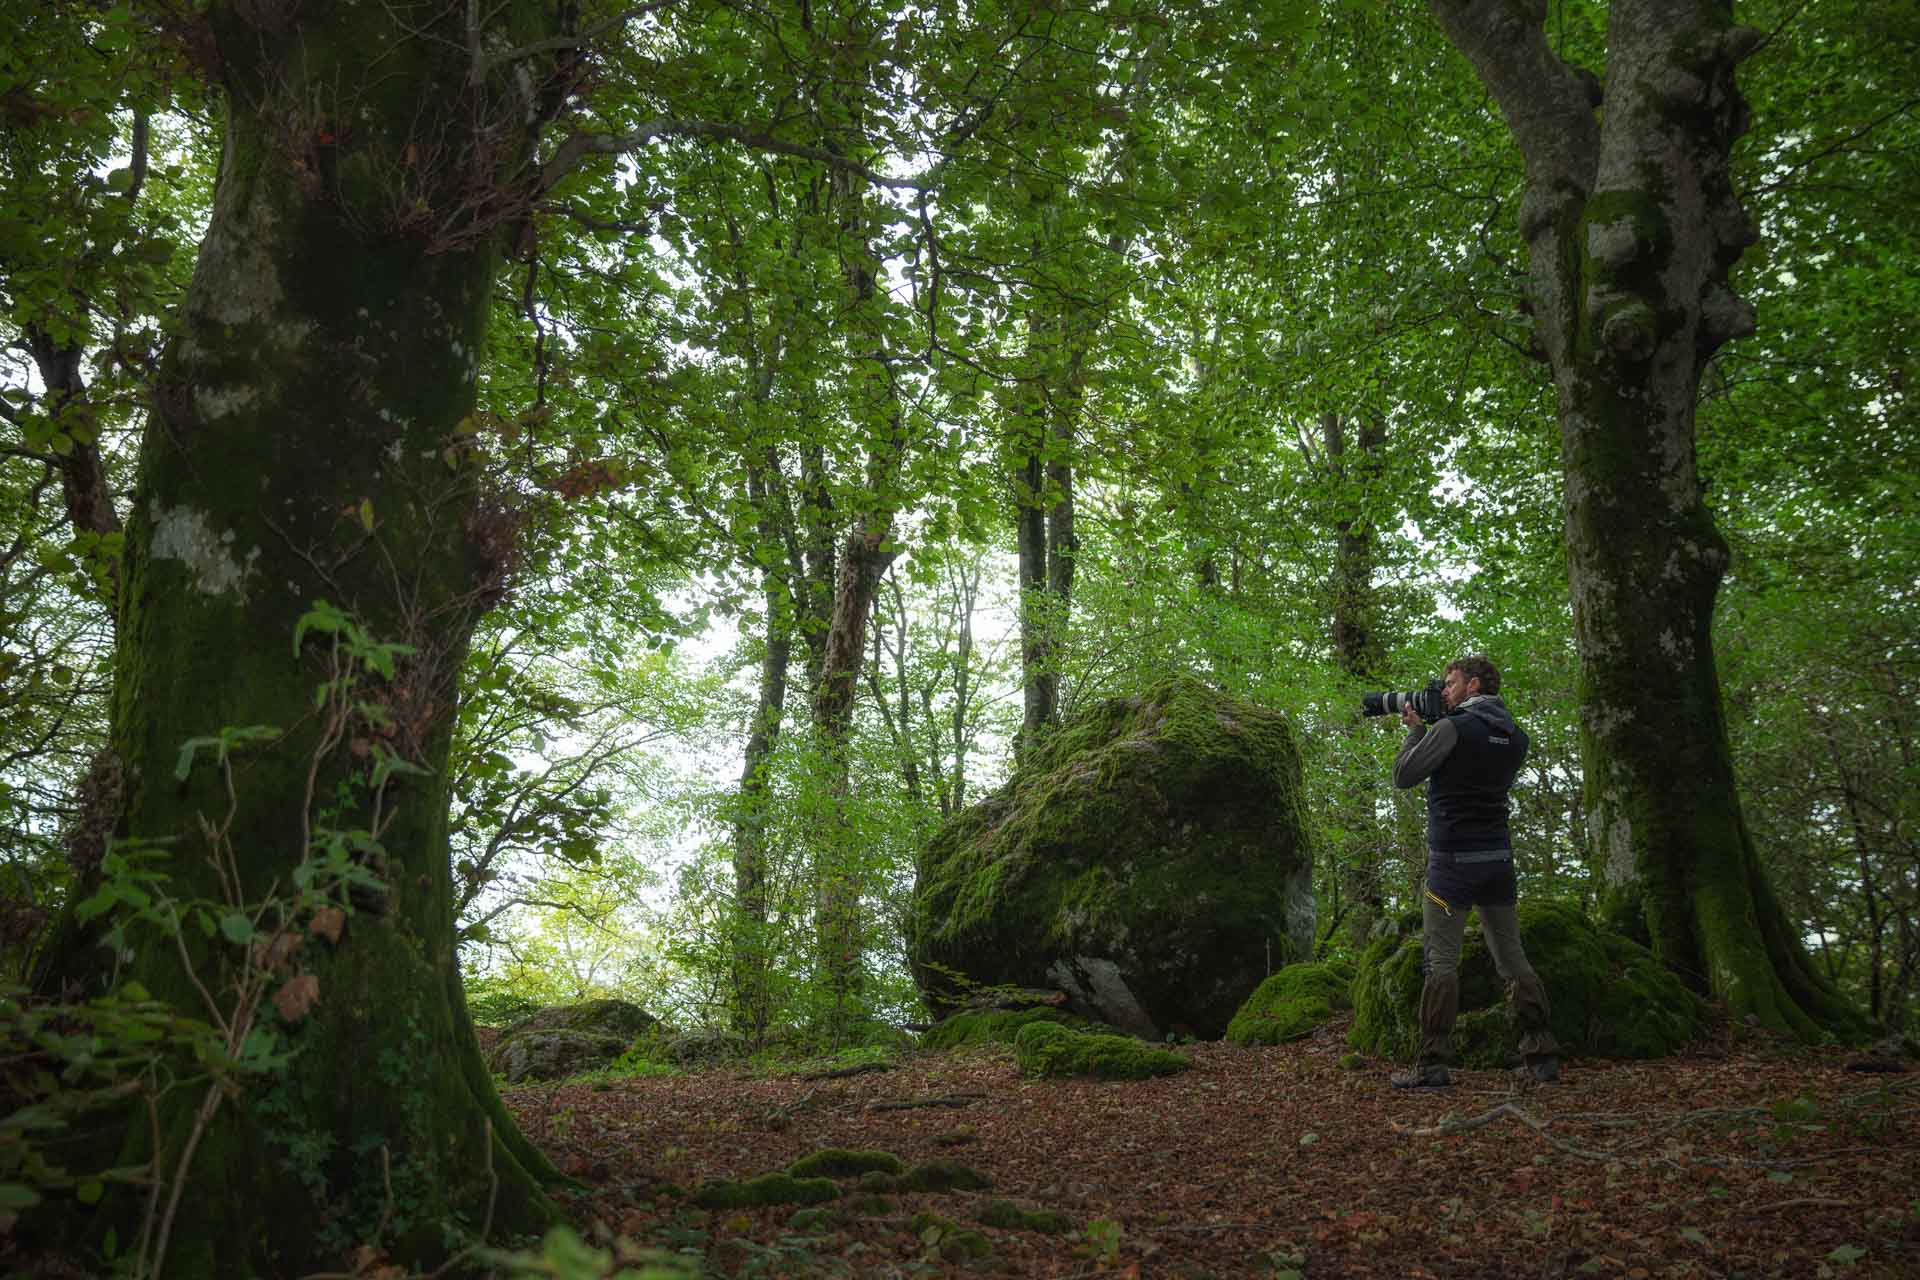 Journey to the Ancient Forests of Italy